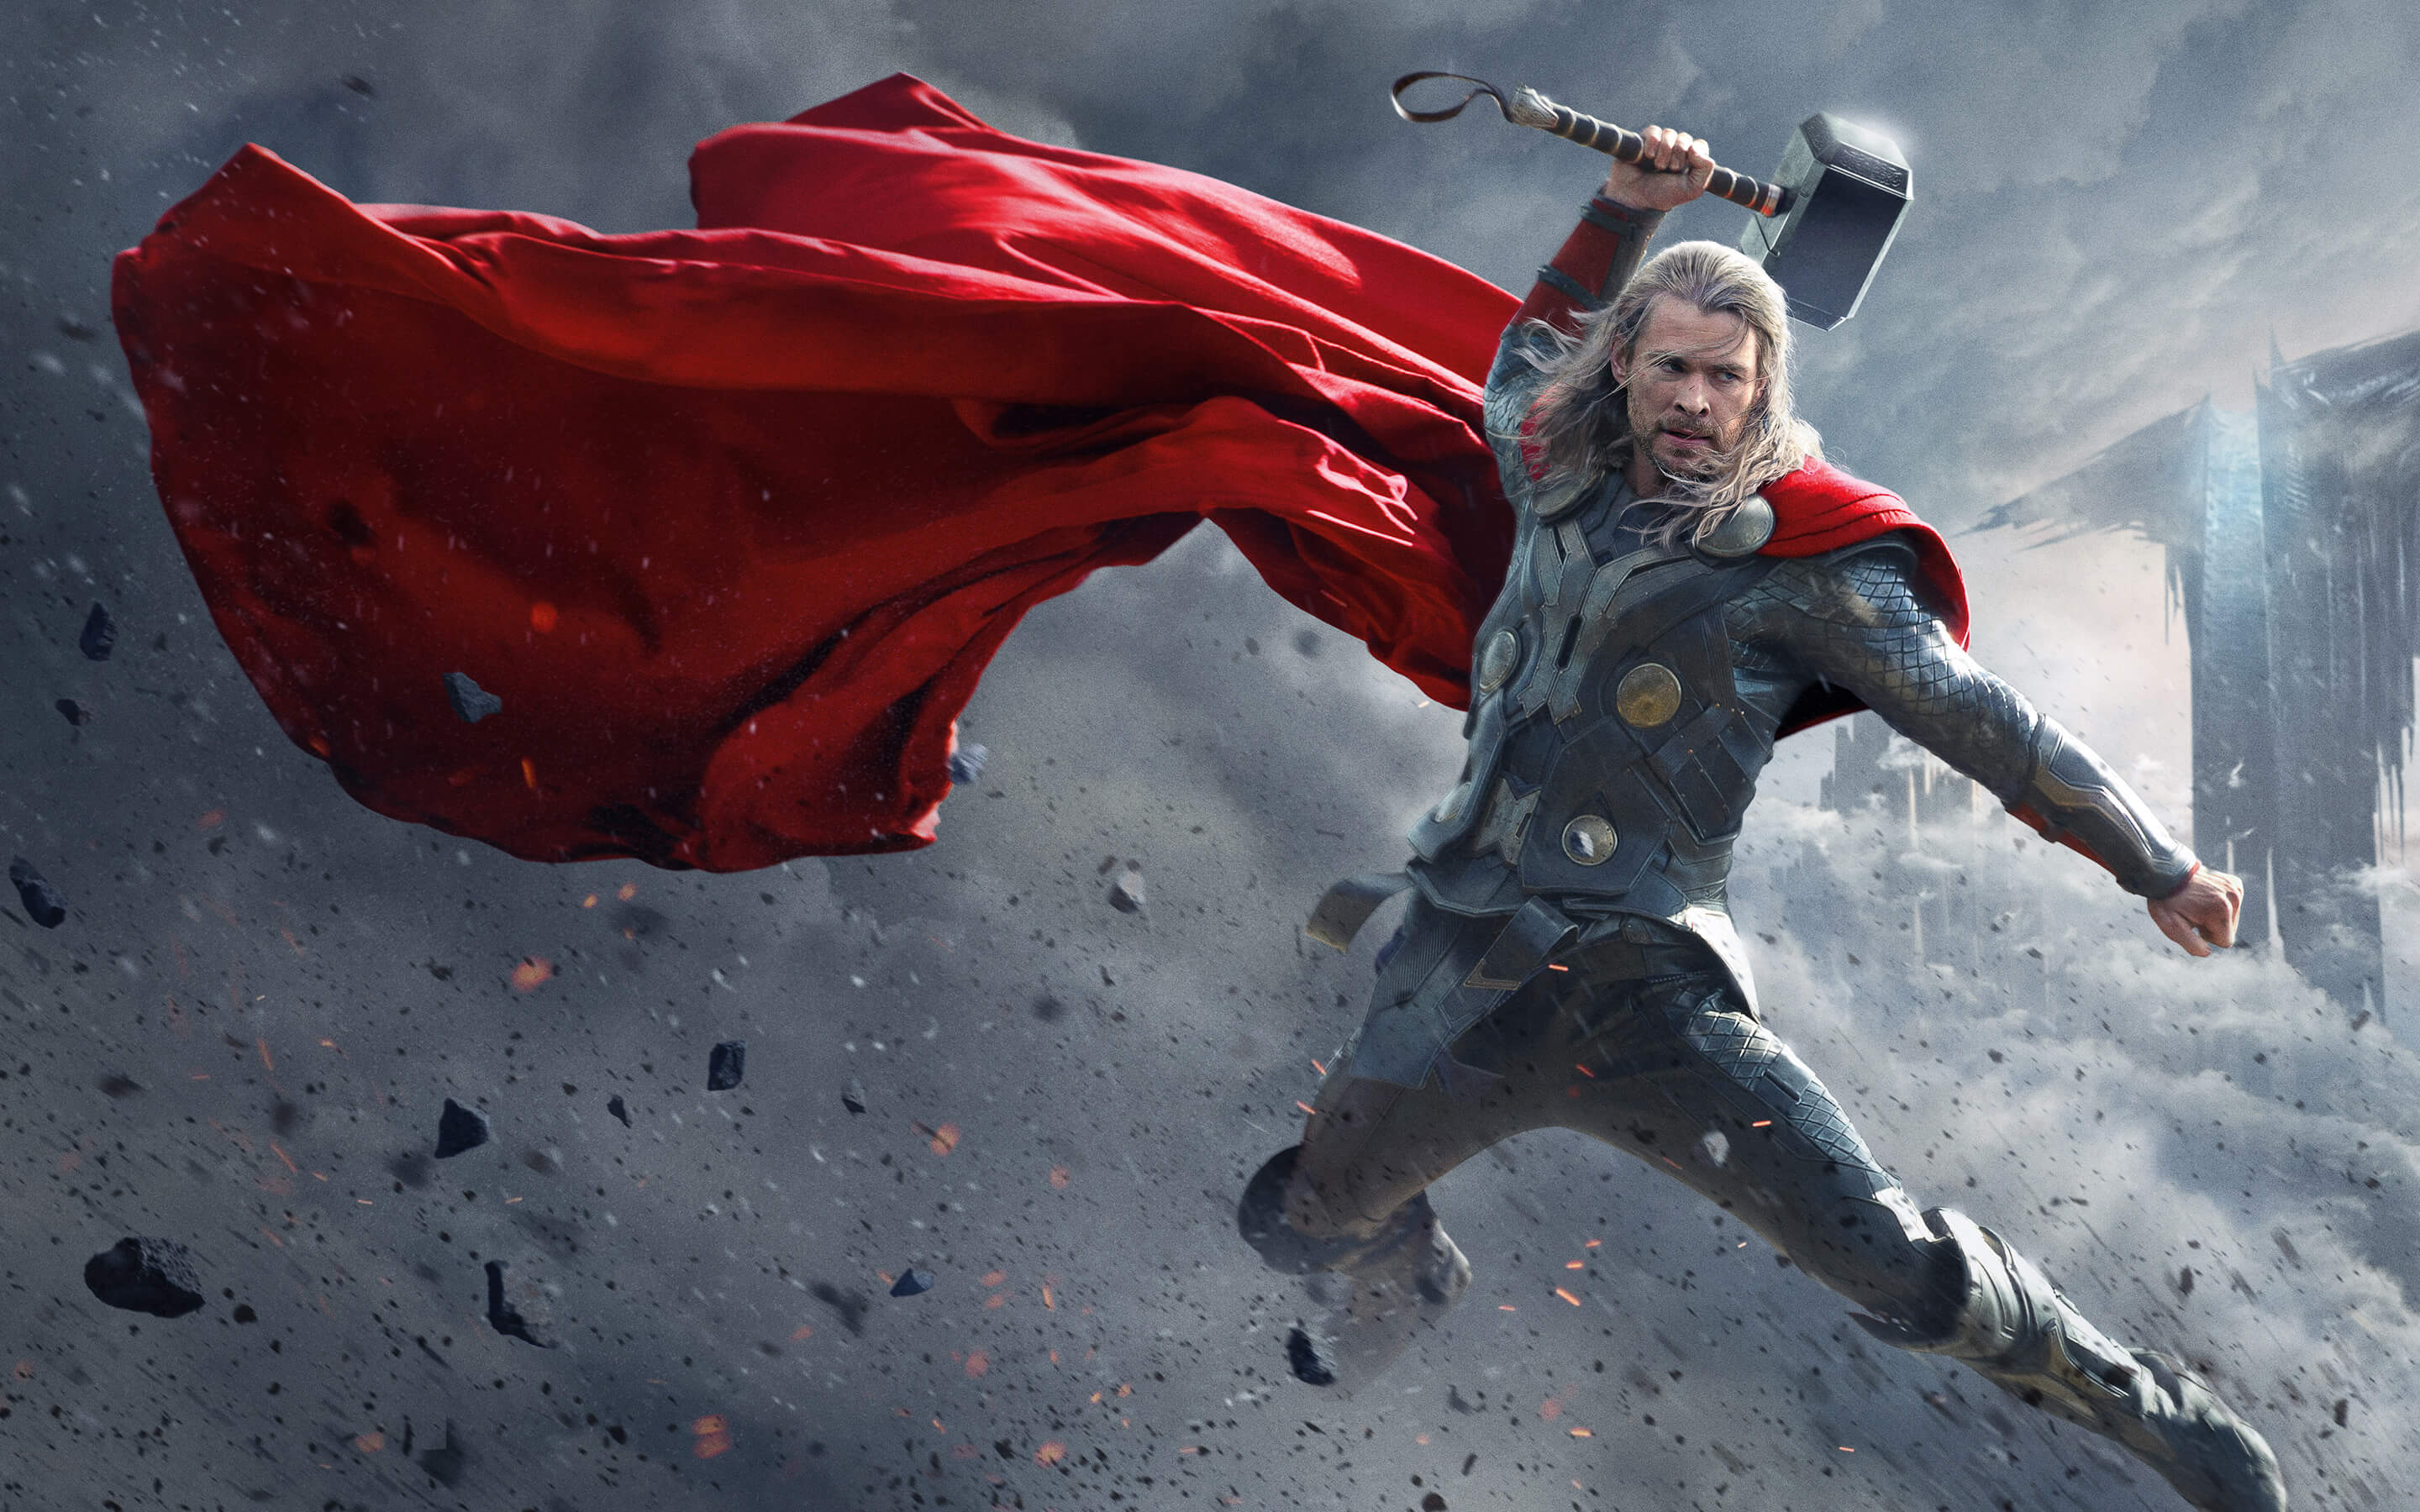 thor-dark-world-asgard-2013